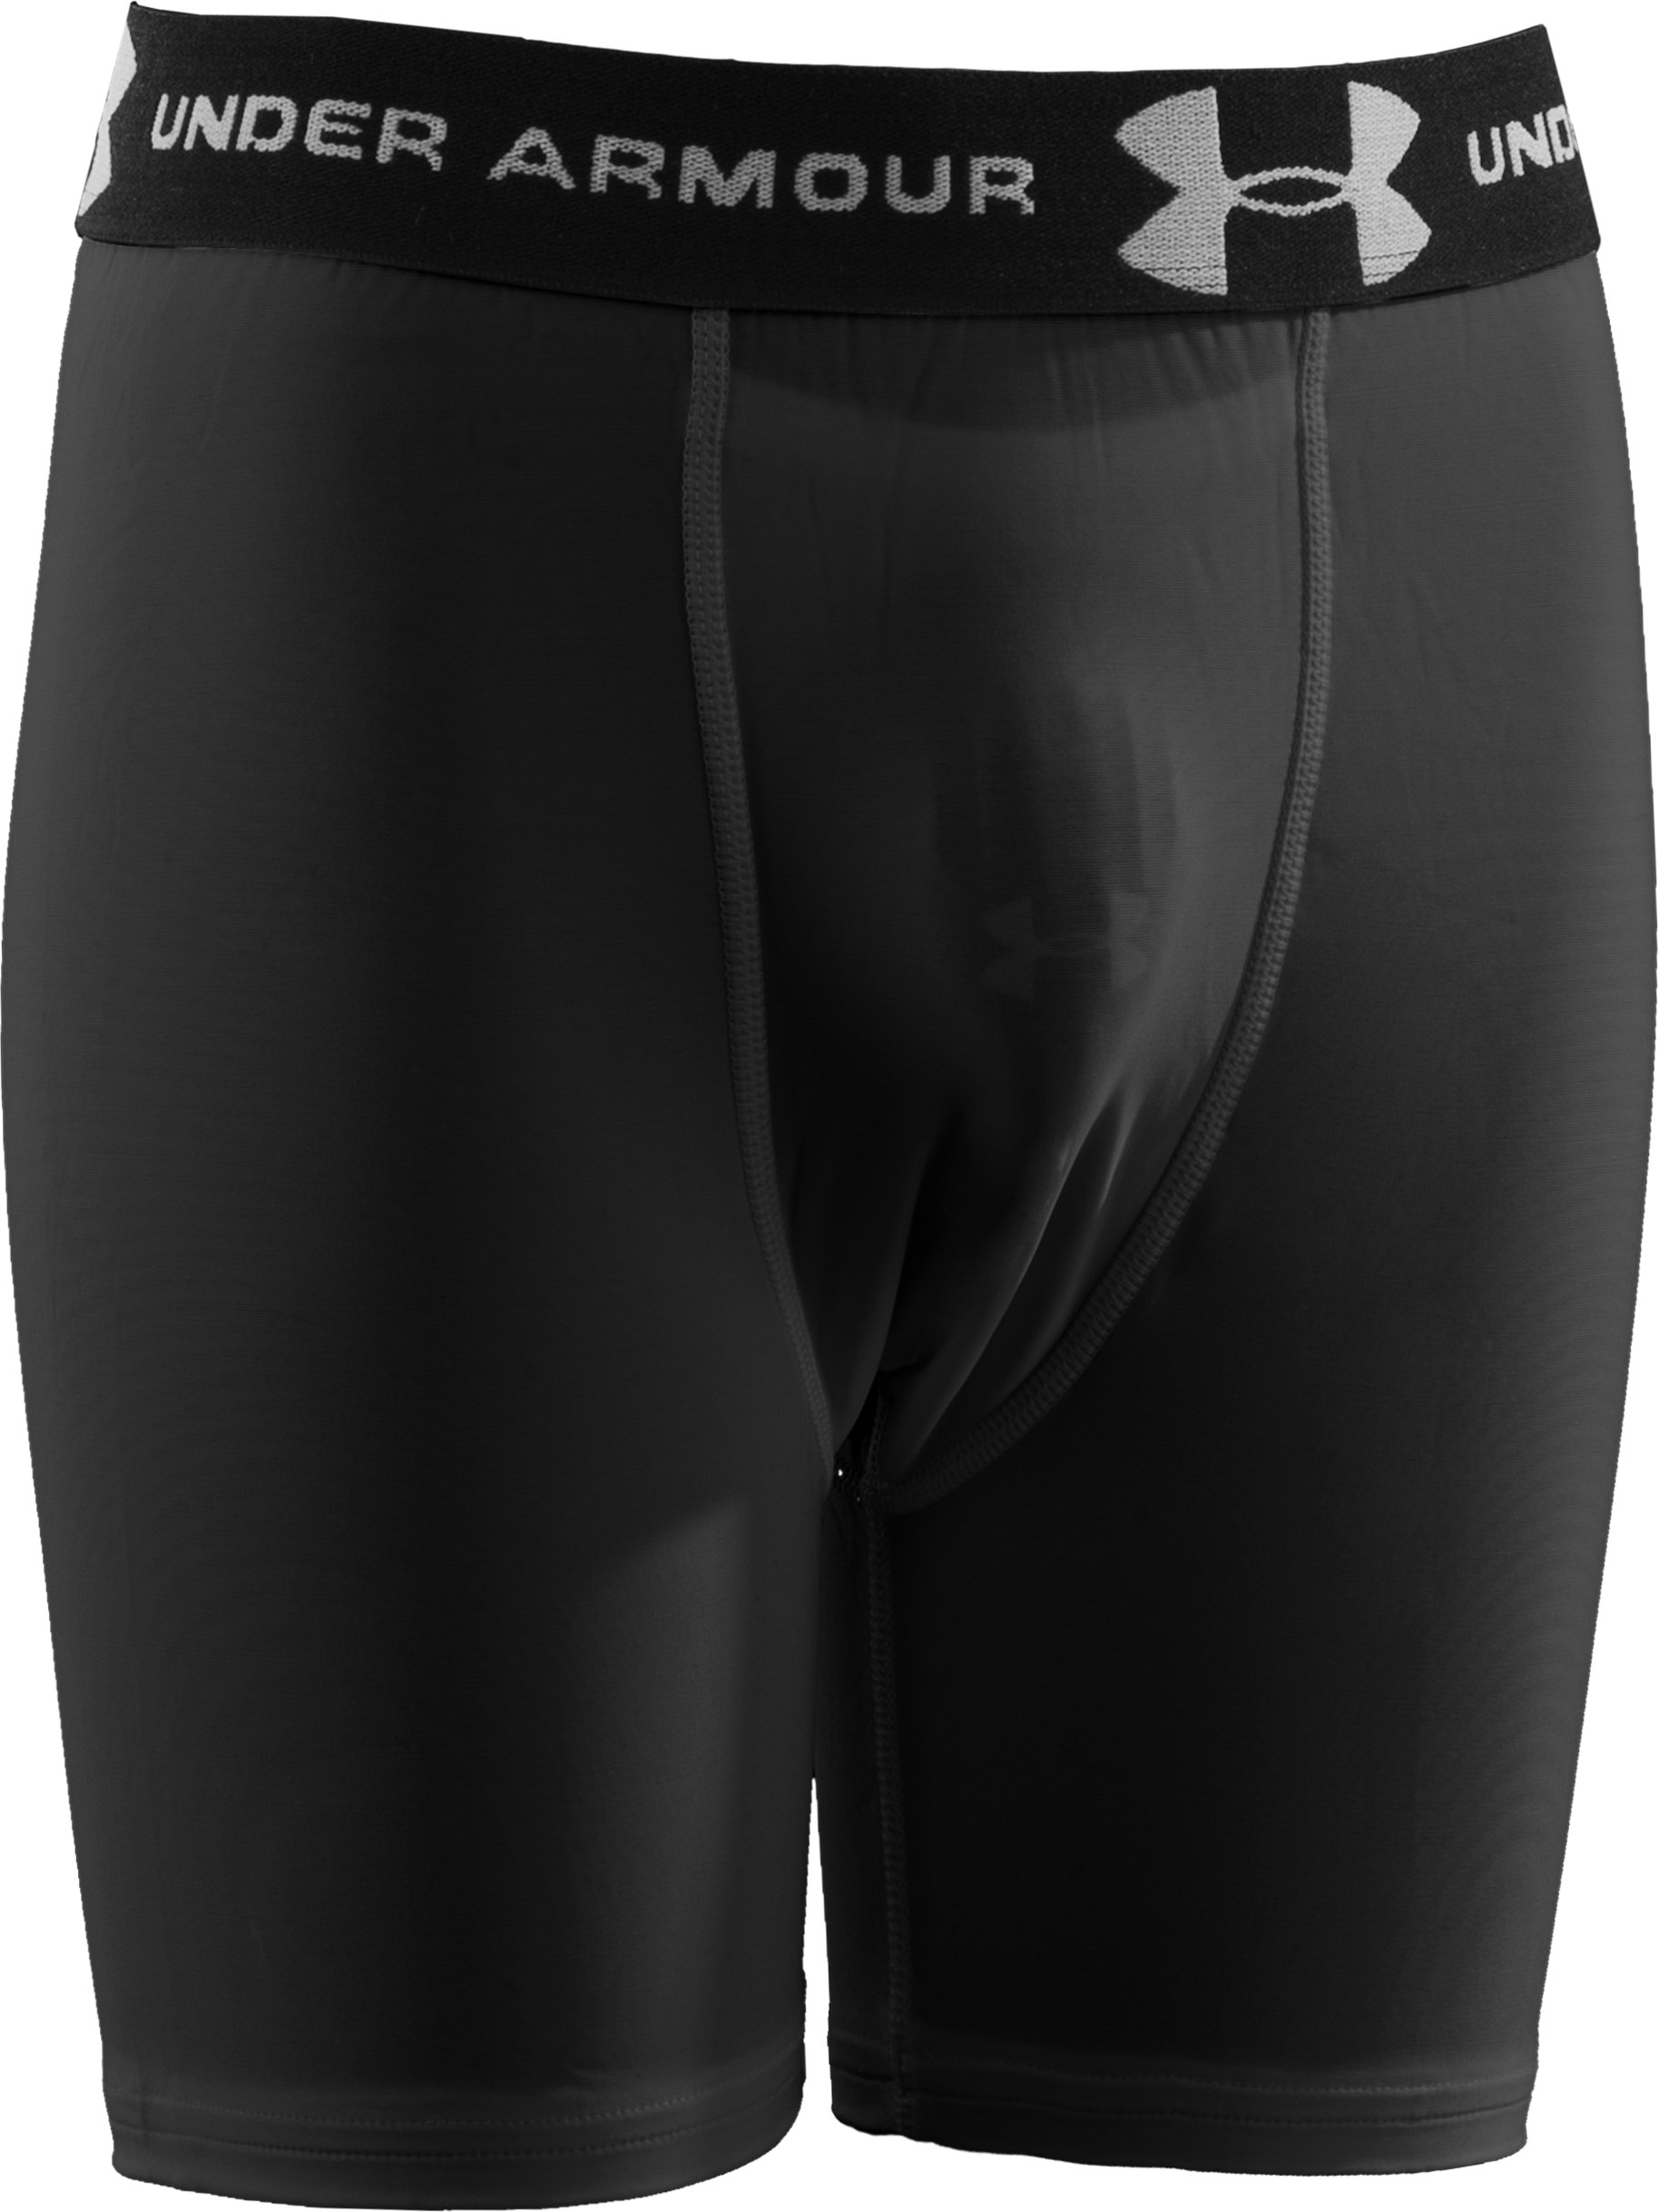 Boys' Compression Shorts with Cup, Black